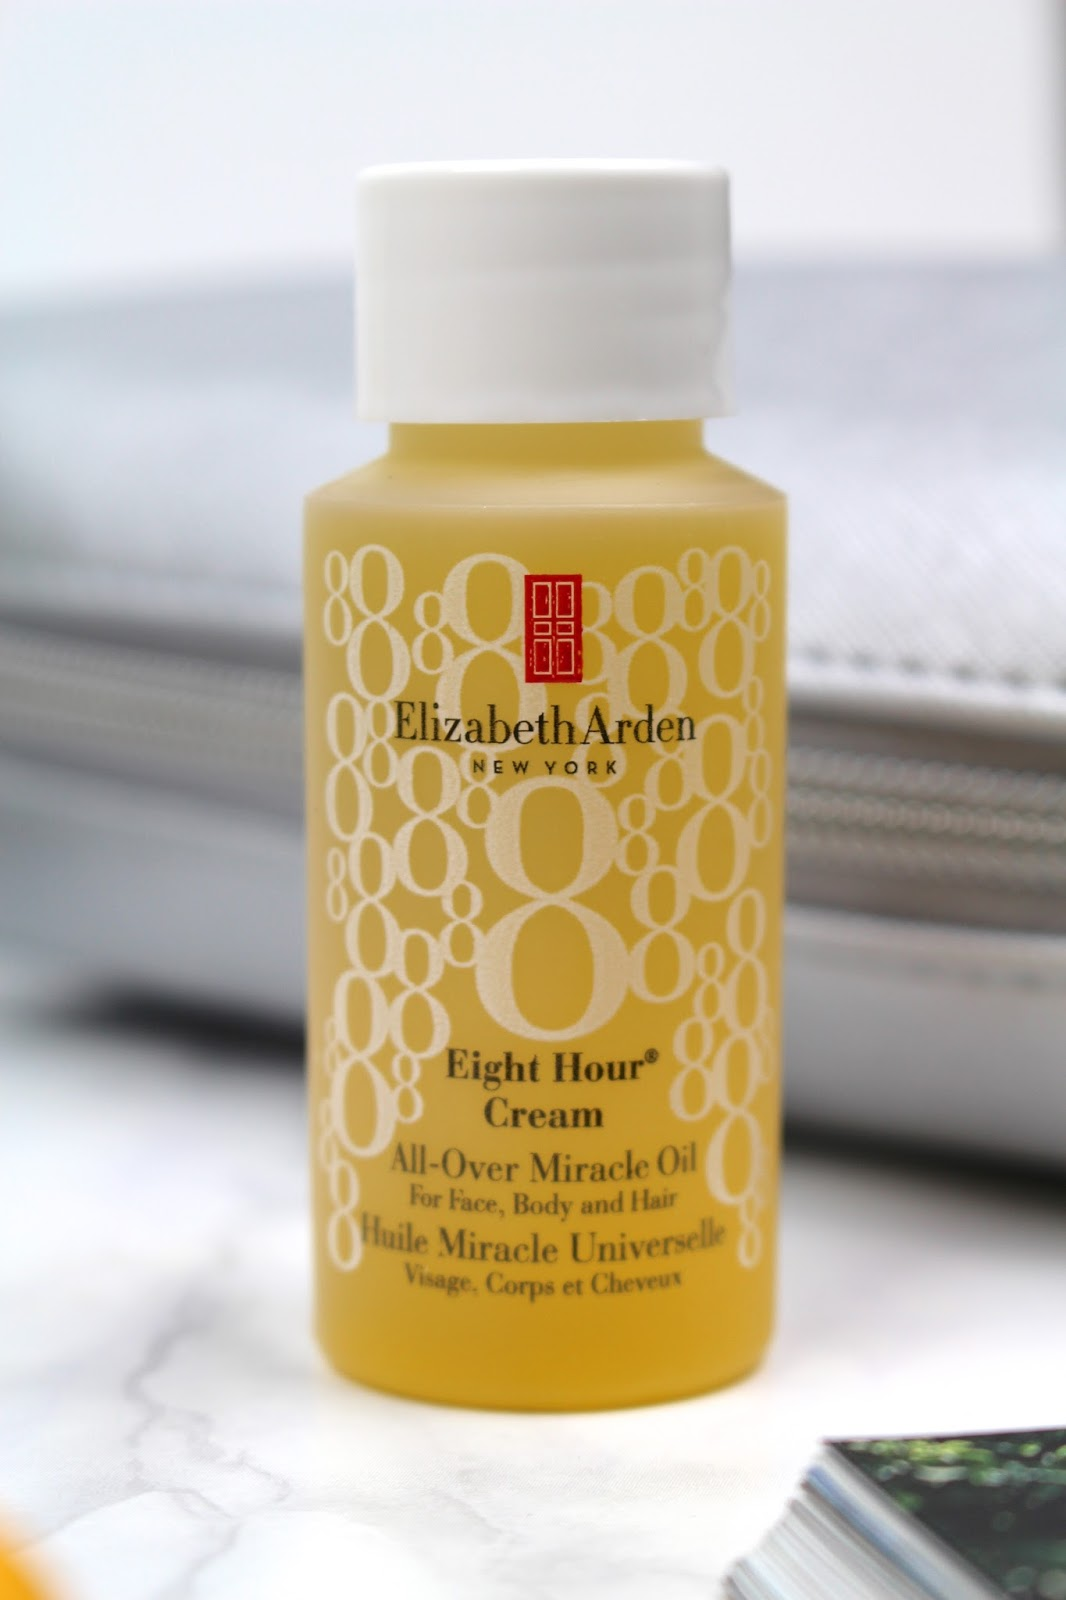 Elizabeth Arden Eight Hour Cream All-Over Miracle Oil review